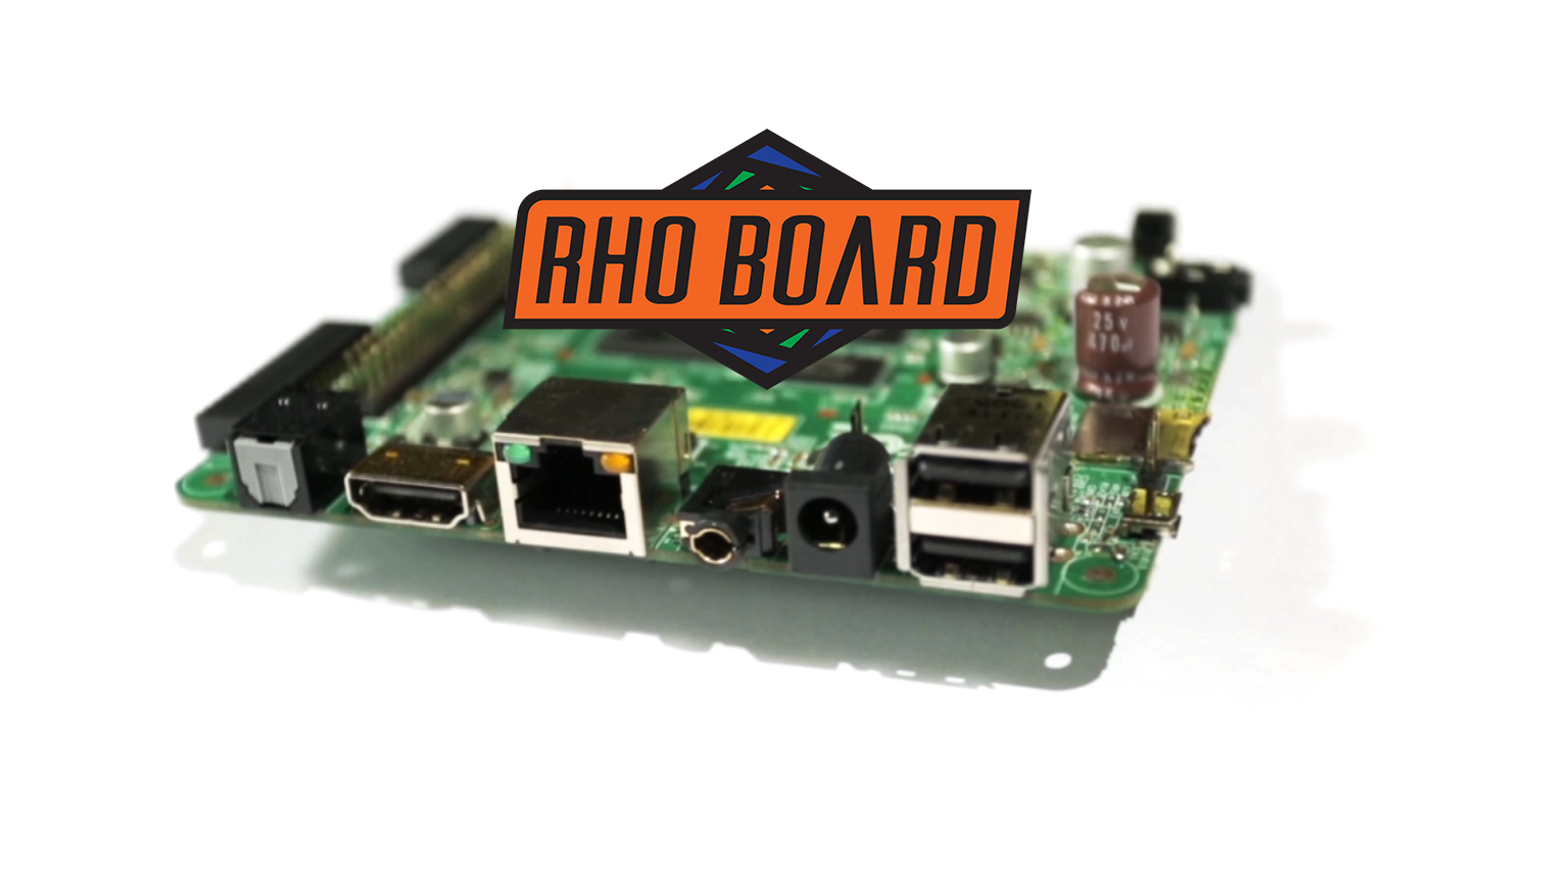 Rho Board By Futarque A S Kickstarter How Printed Circuit Is Made From Pcb Universe